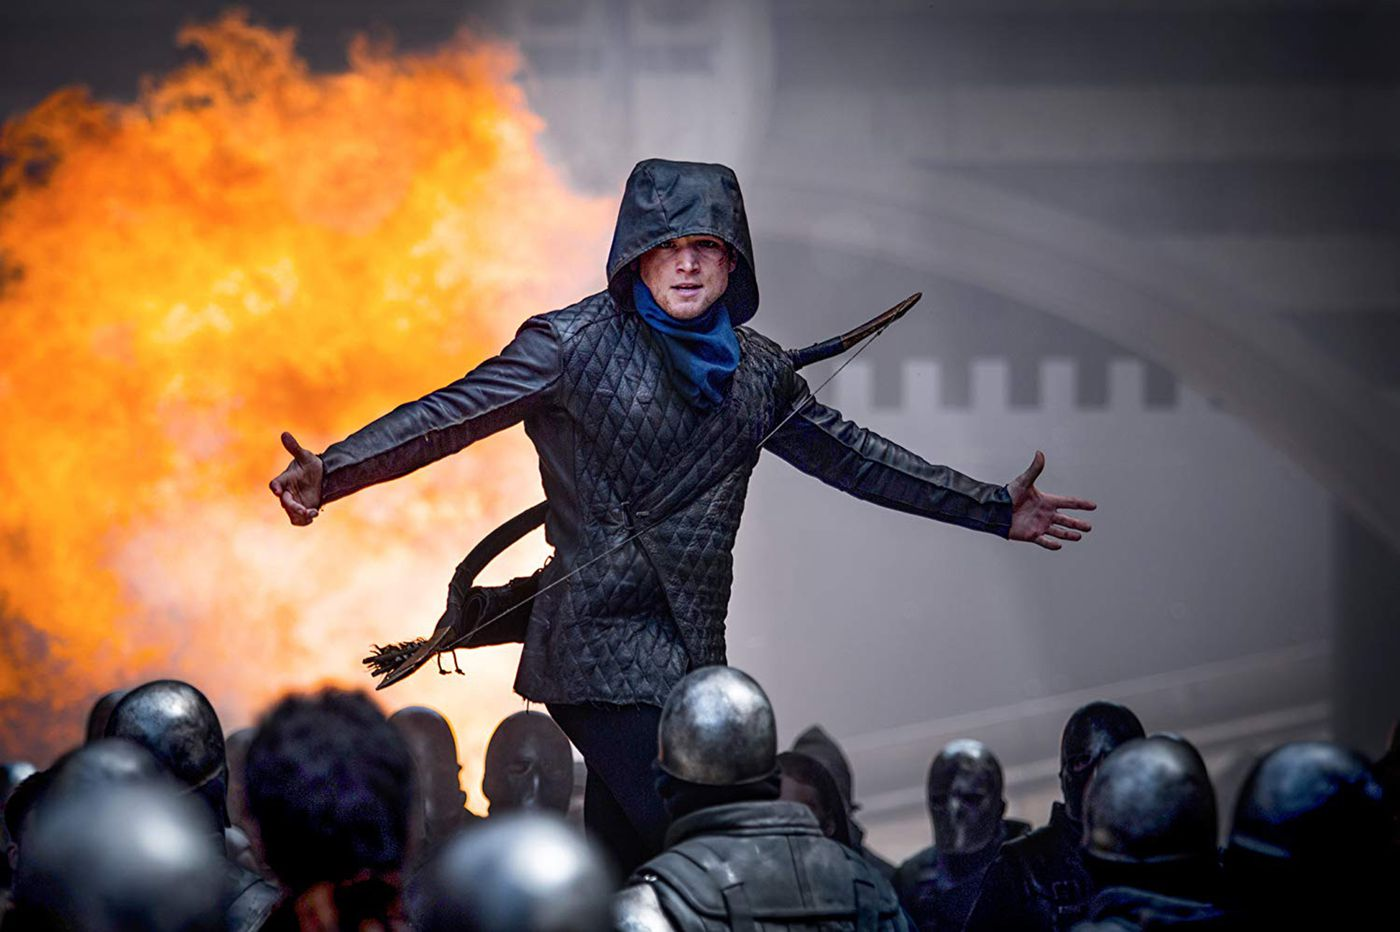 'Robin Hood' not likely to make you quiver